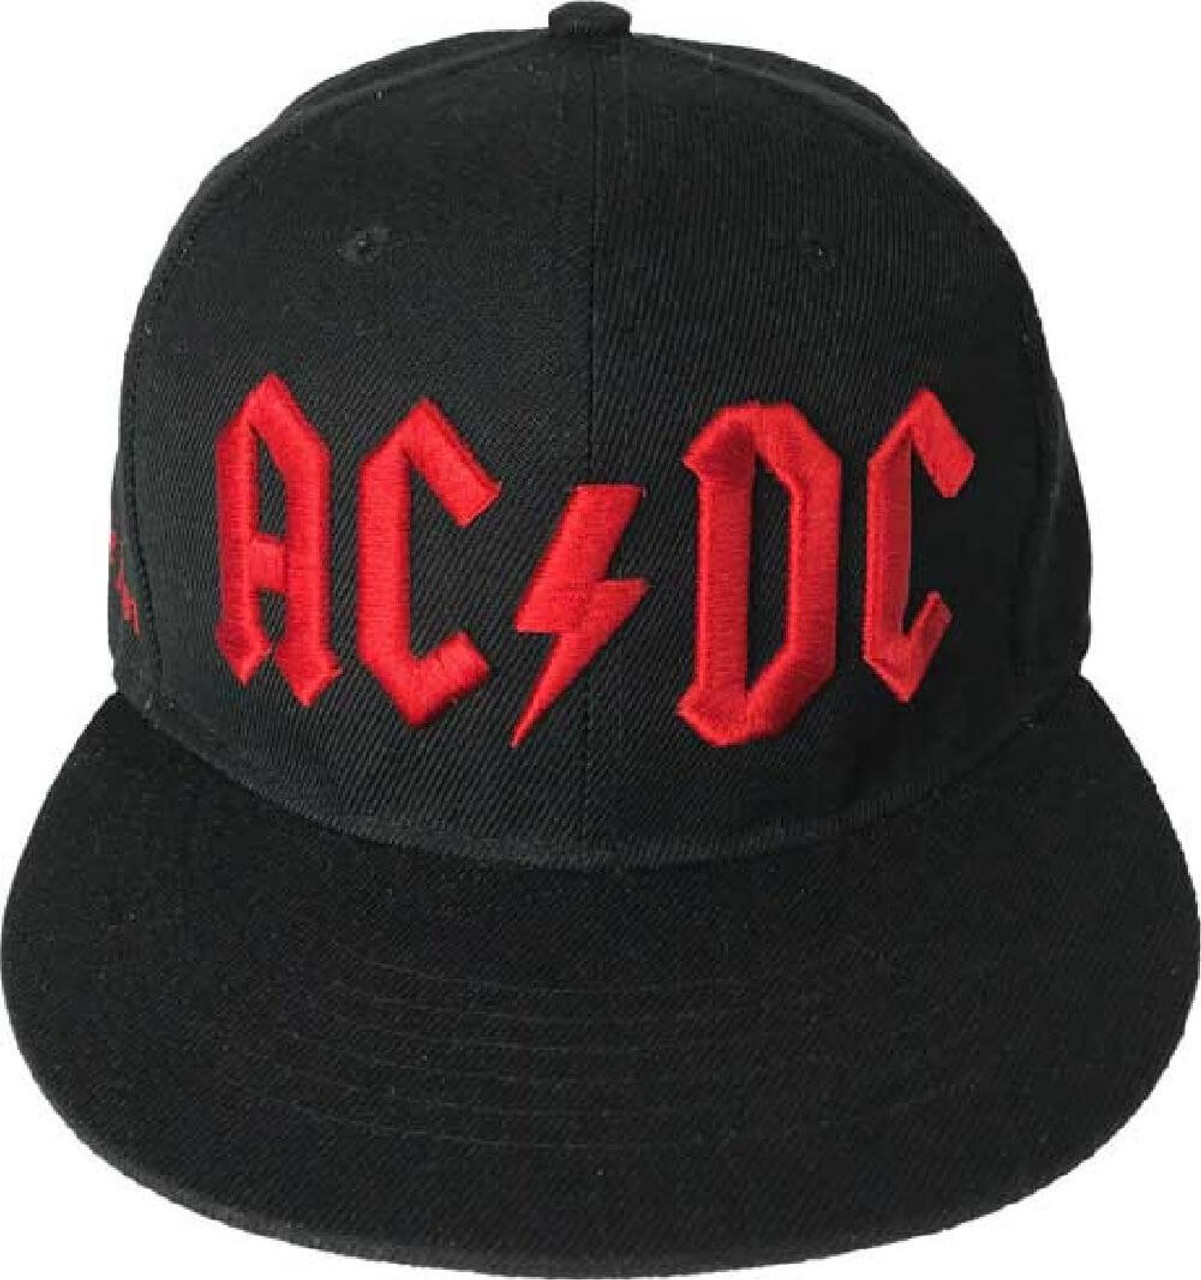 Acdc Logo Black Baseball Hat  Rocker Rags-7643